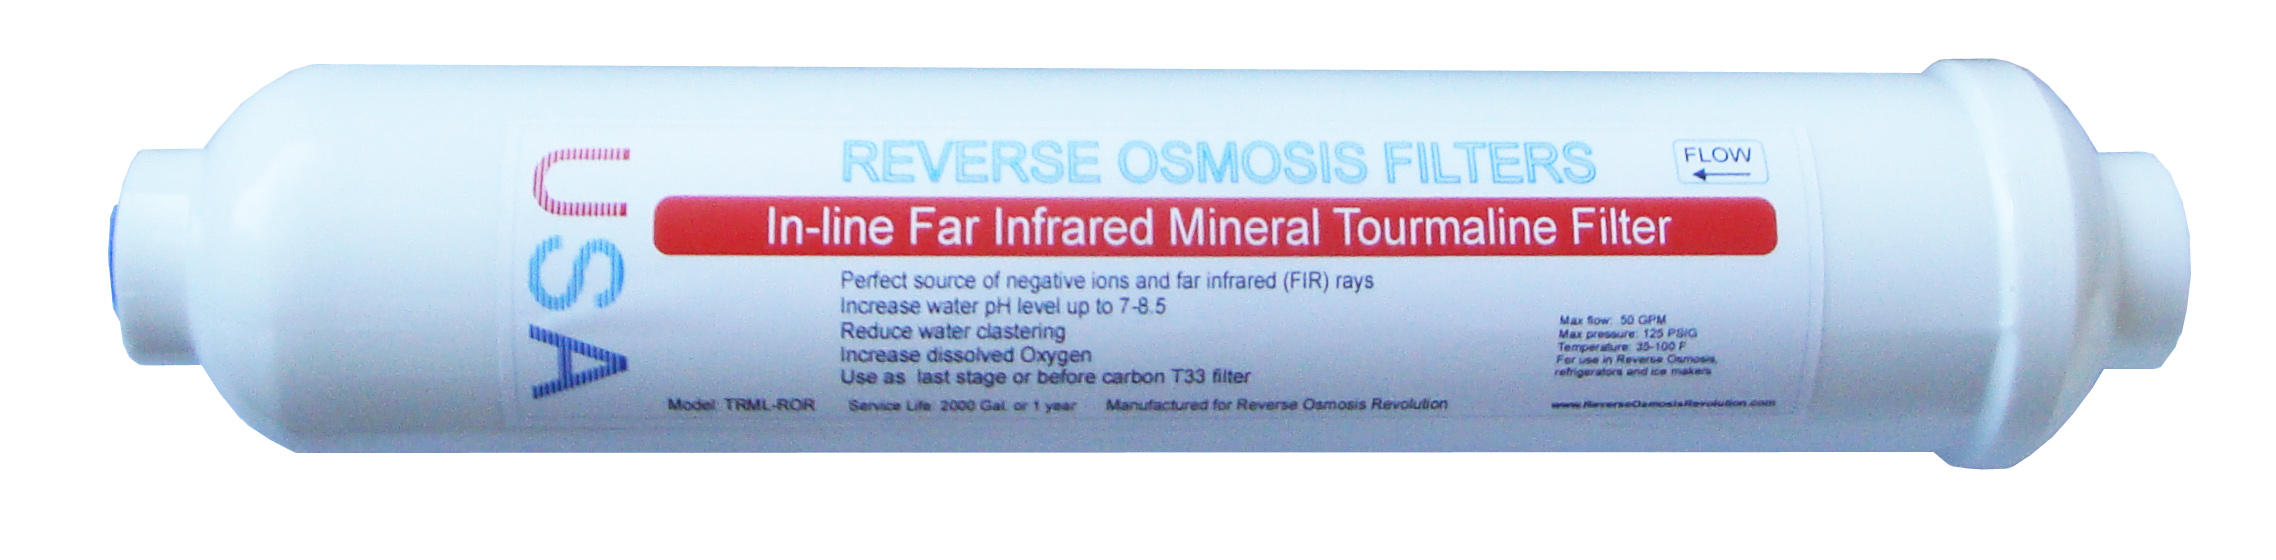 "Low Alkaline Far Infrared Mineral Tourmaline inline 10""x2"" filter"